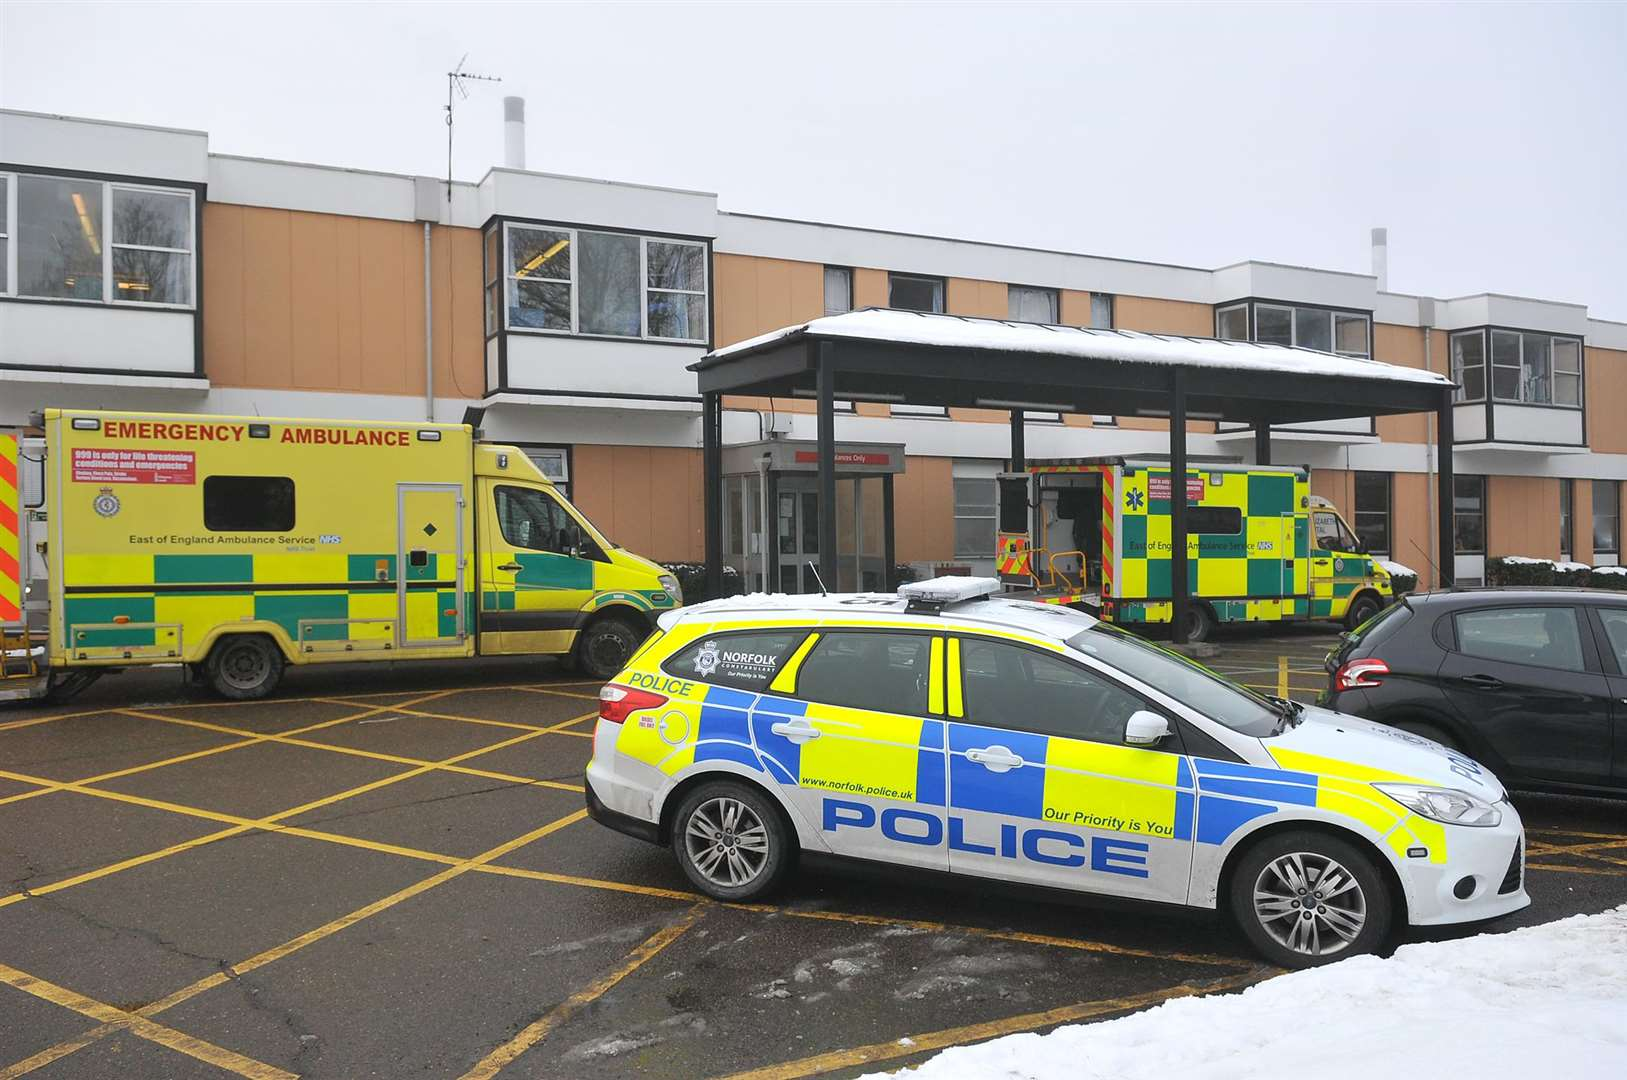 Views of the Queen Elizabeth Hospital. Entrance to Accident and Emergency.. (6377580)